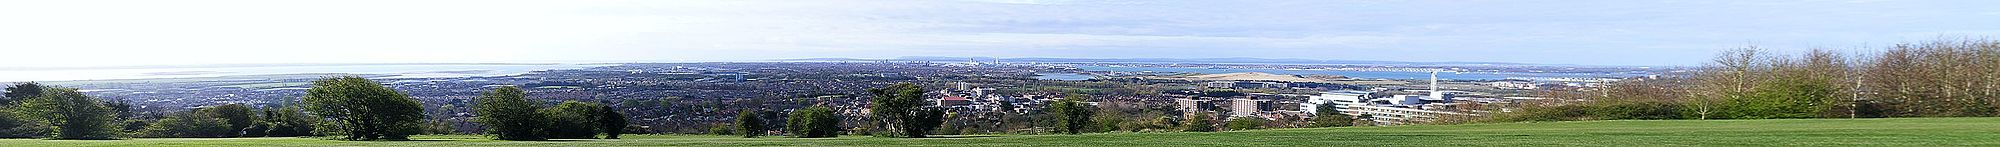 Portsmouth panorama from Portsdown Hill